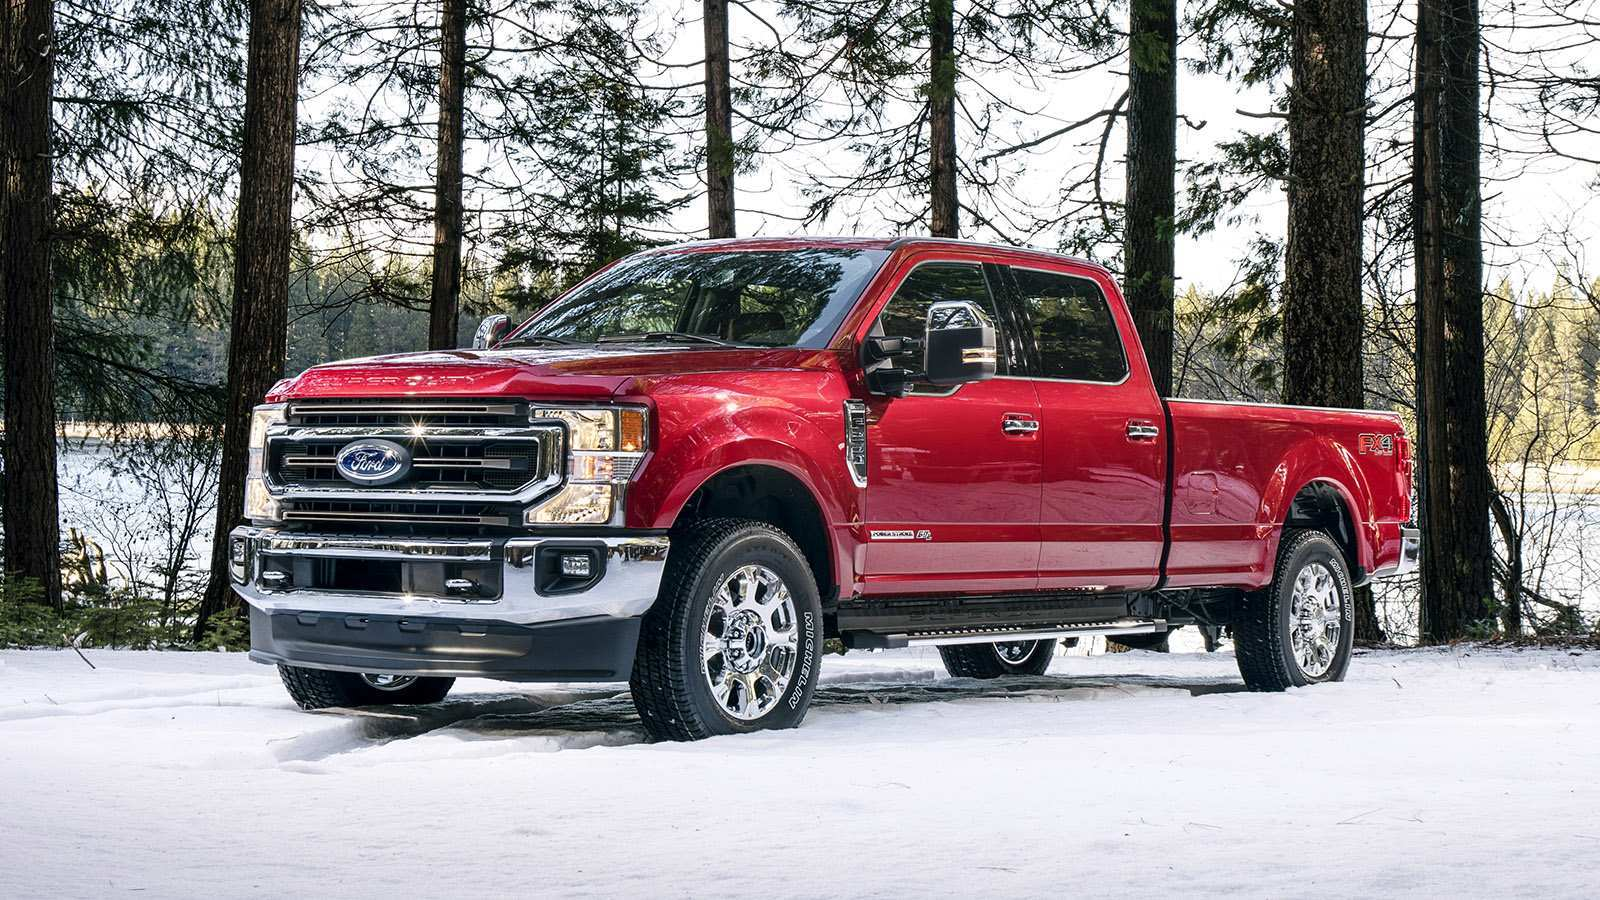 25 Concept of Ford King Ranch 2020 Review for Ford King Ranch 2020